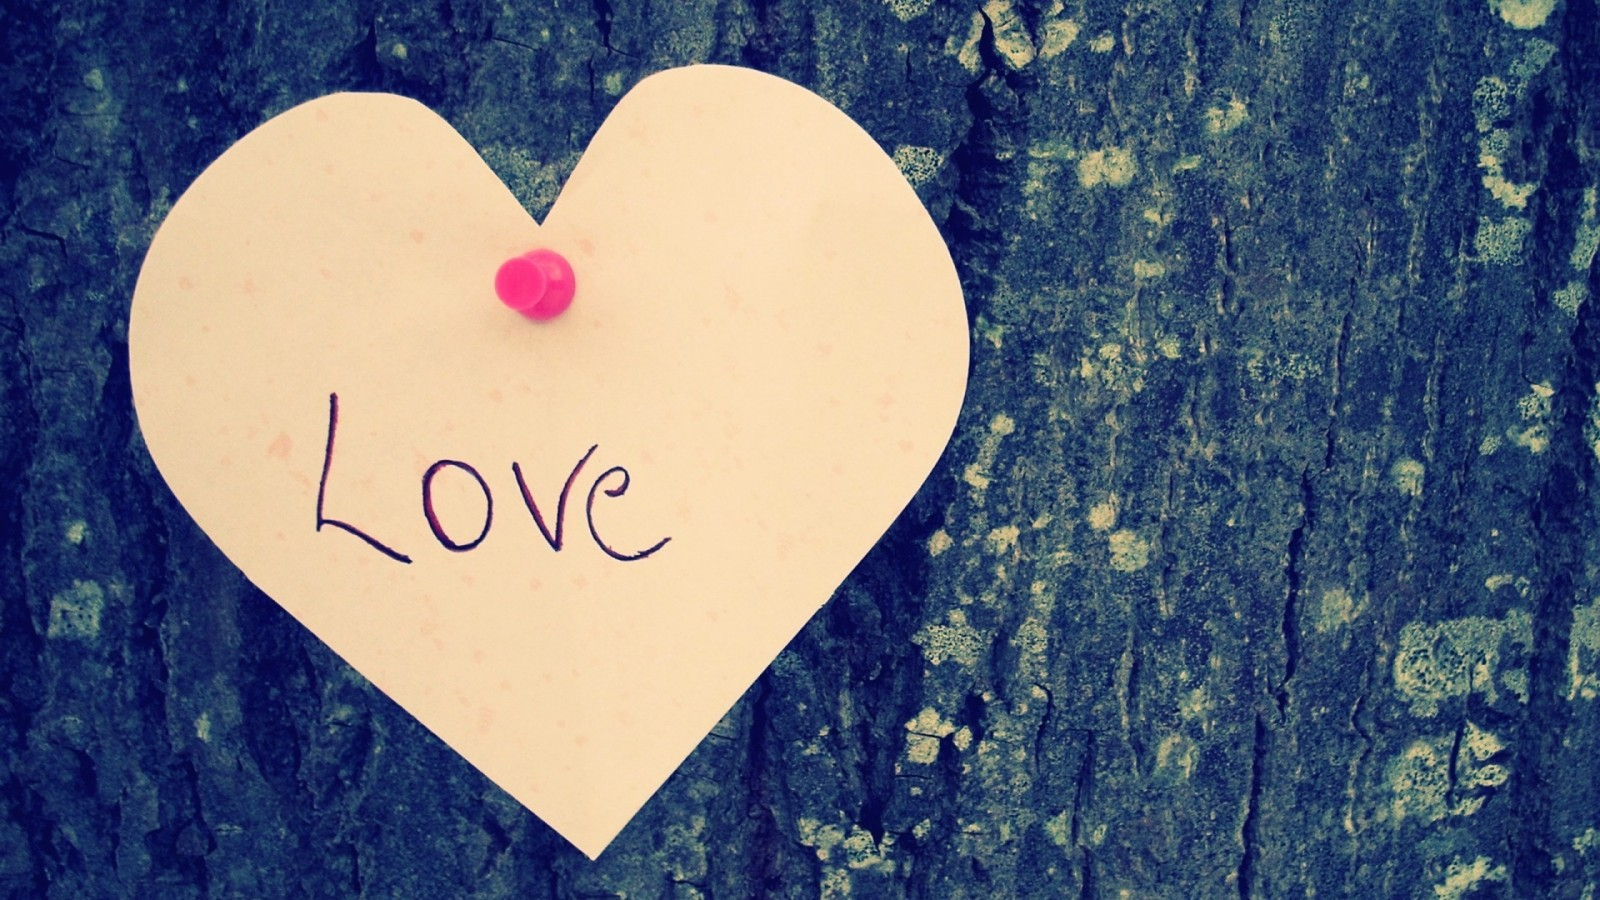 46 Love HD Images for Free (2MTX Love HD Wallpapers)